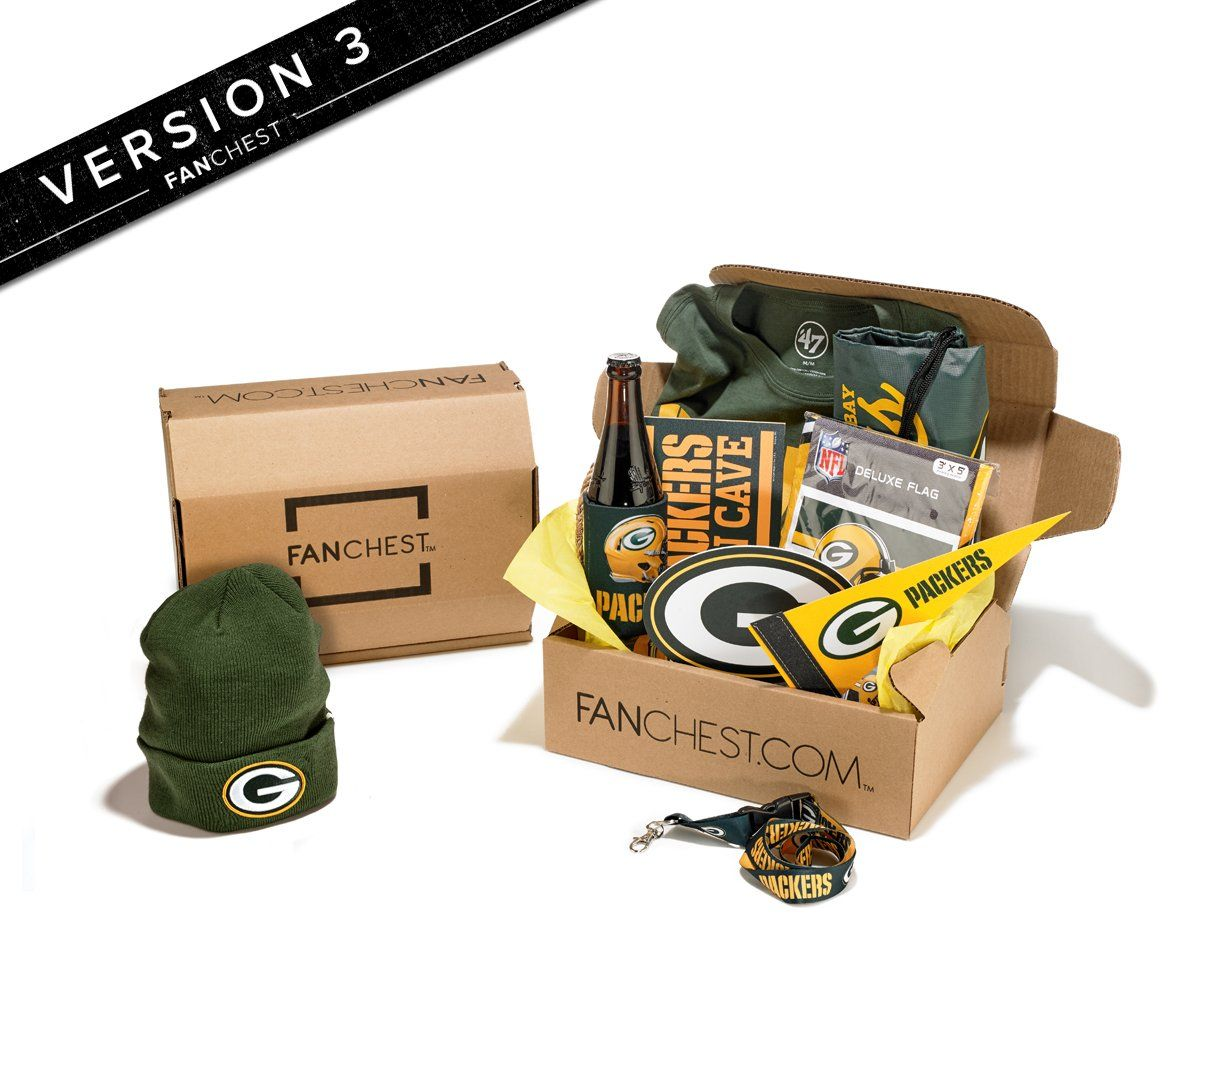 Green Bay Packers Gift Box Packers Gear Great Gift For Packer Fans Green Bay Packers Gifts Packers Gifts Gifts For Sports Fans